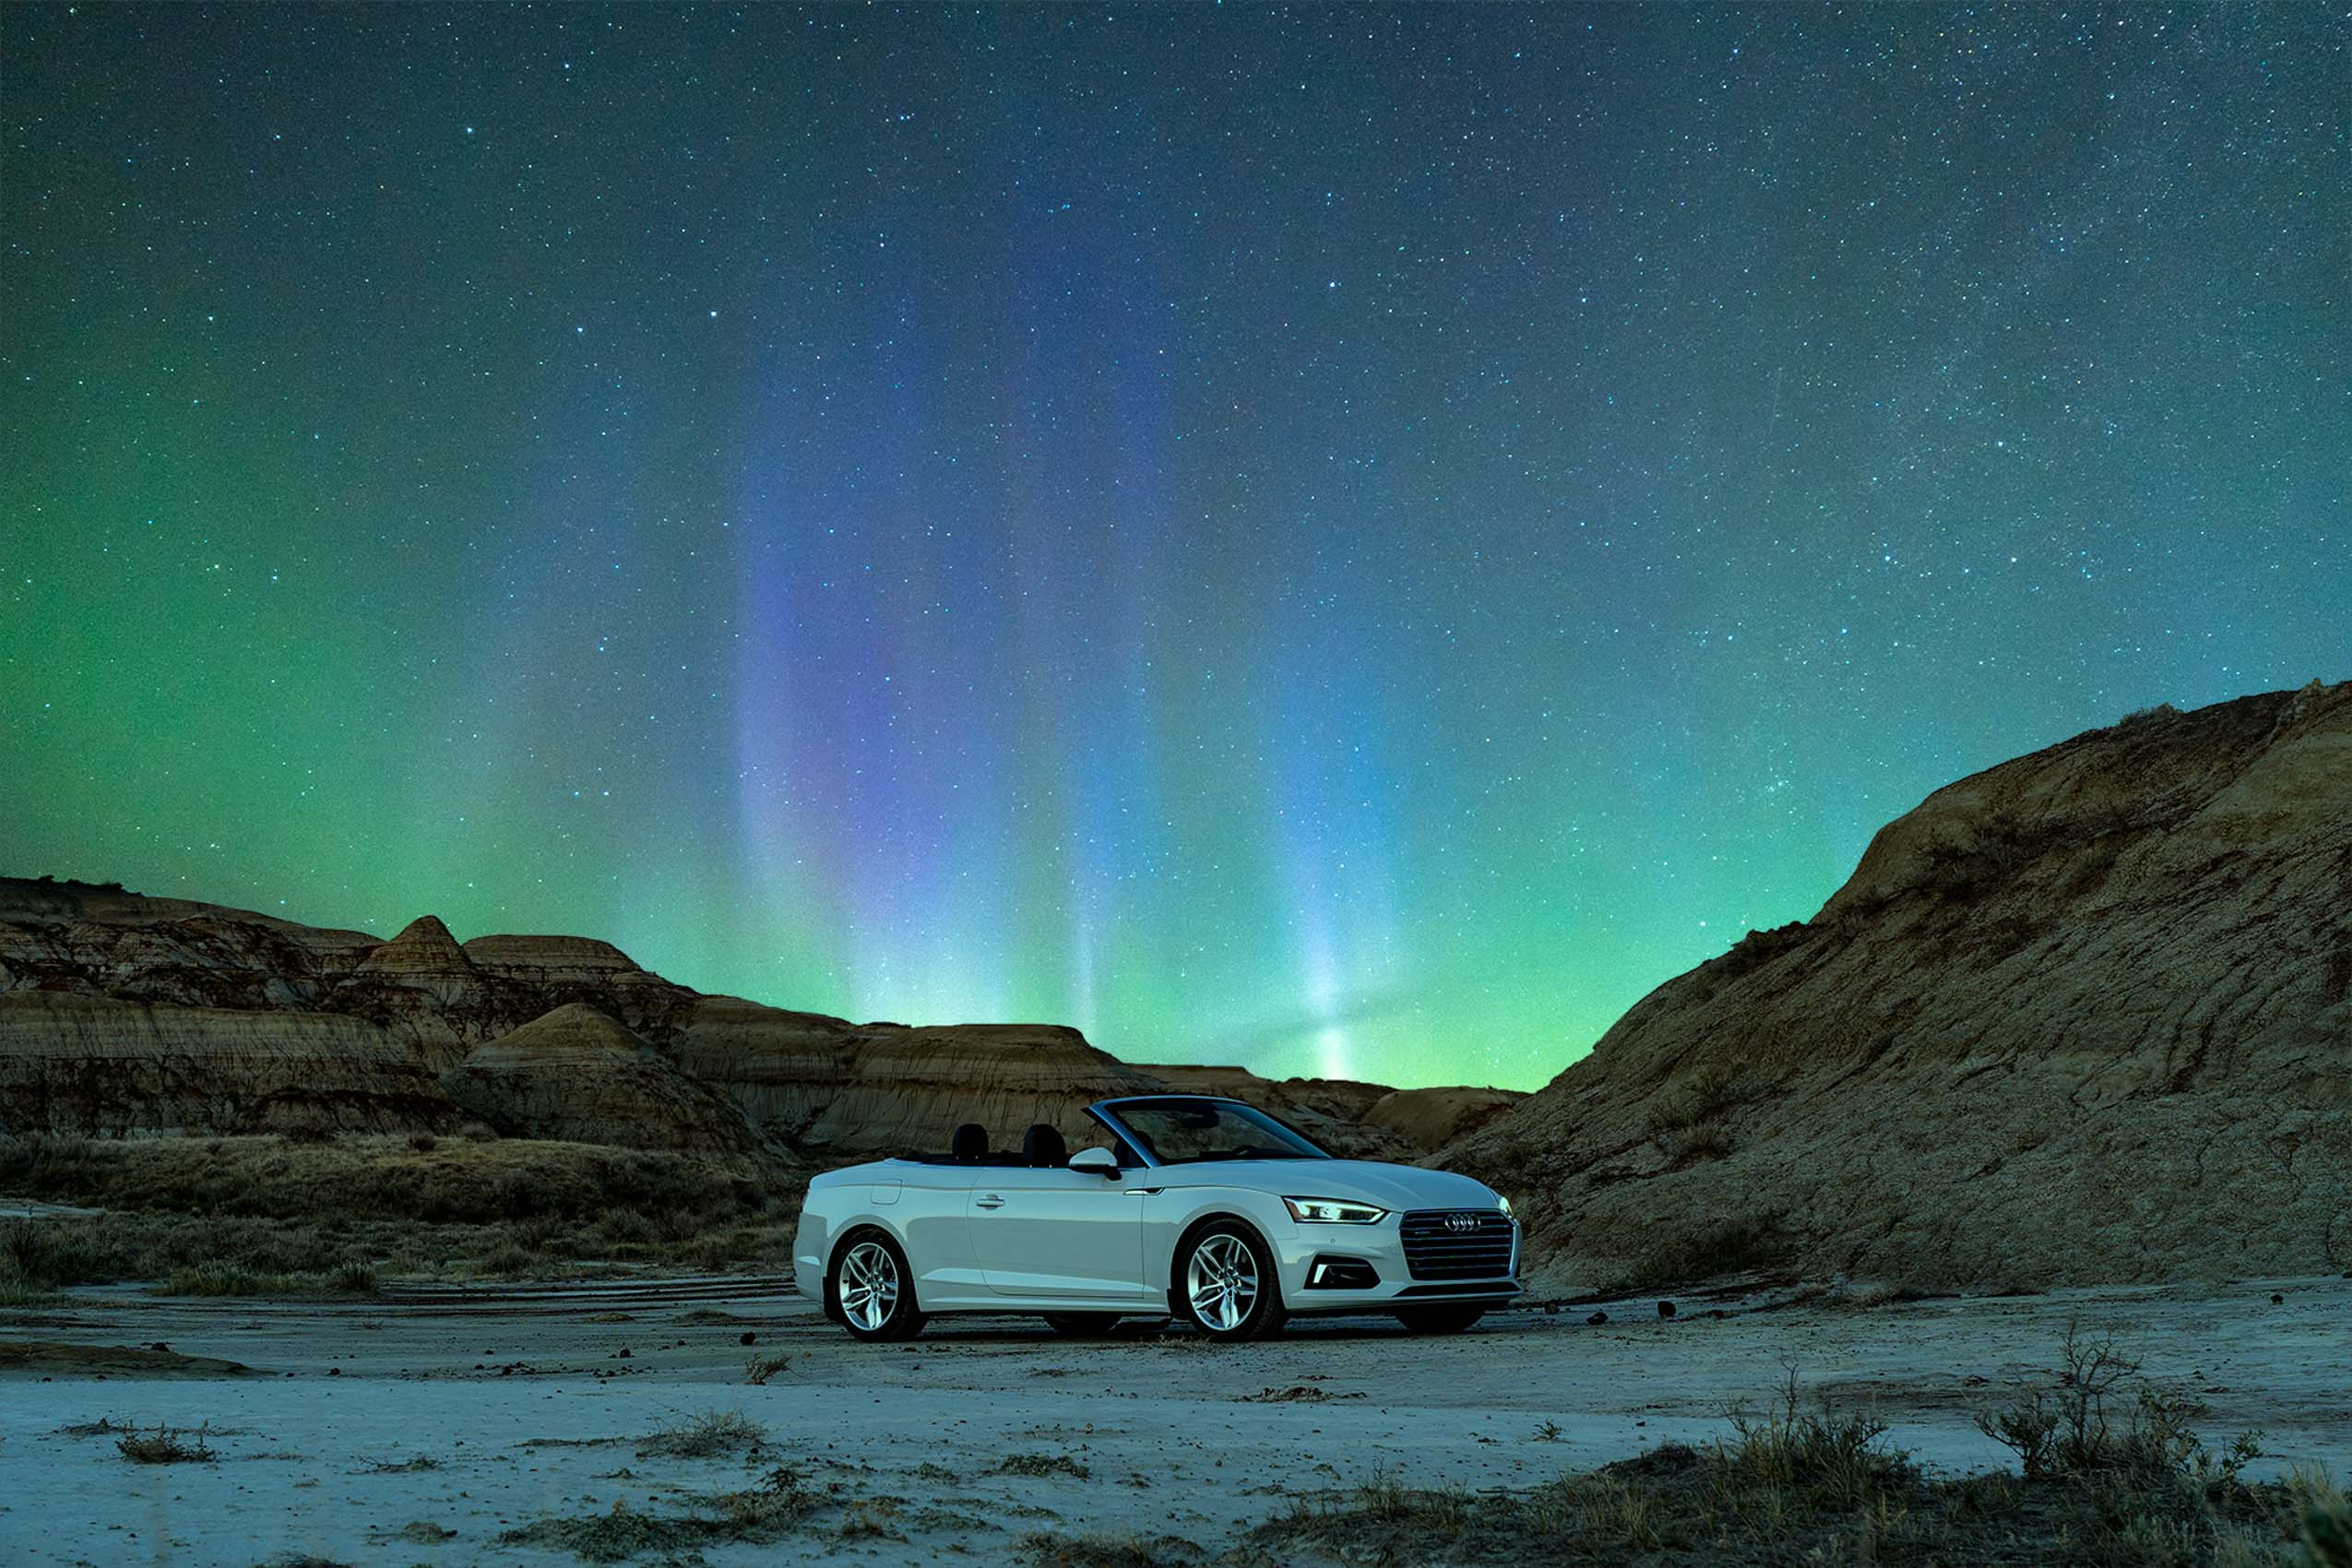 Audi A5 Cabriolet Under Aurora Alberta Canada Karl Lee Car Photographer